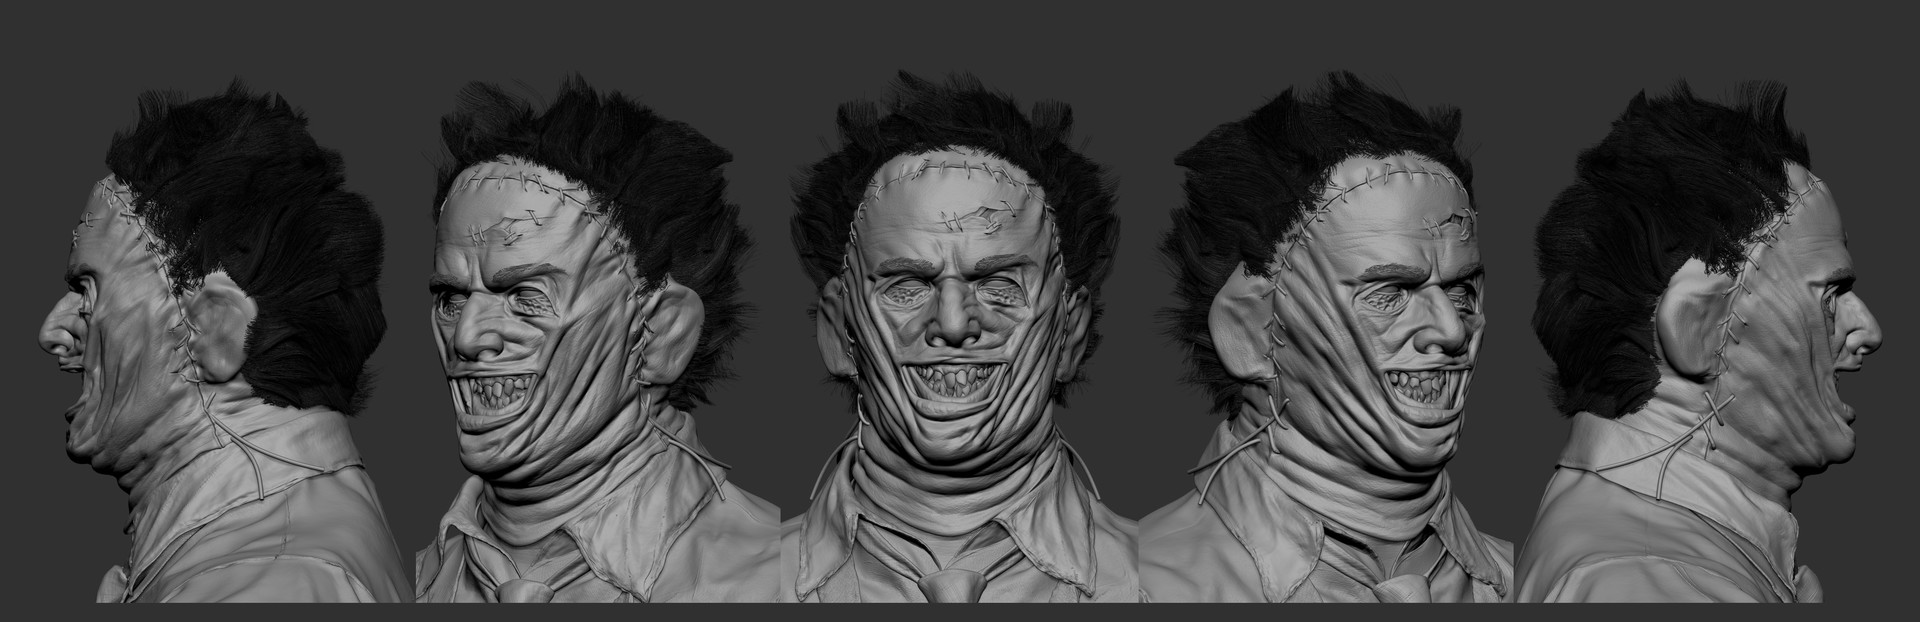 Solomon gaitan leatherface crazykillersmile